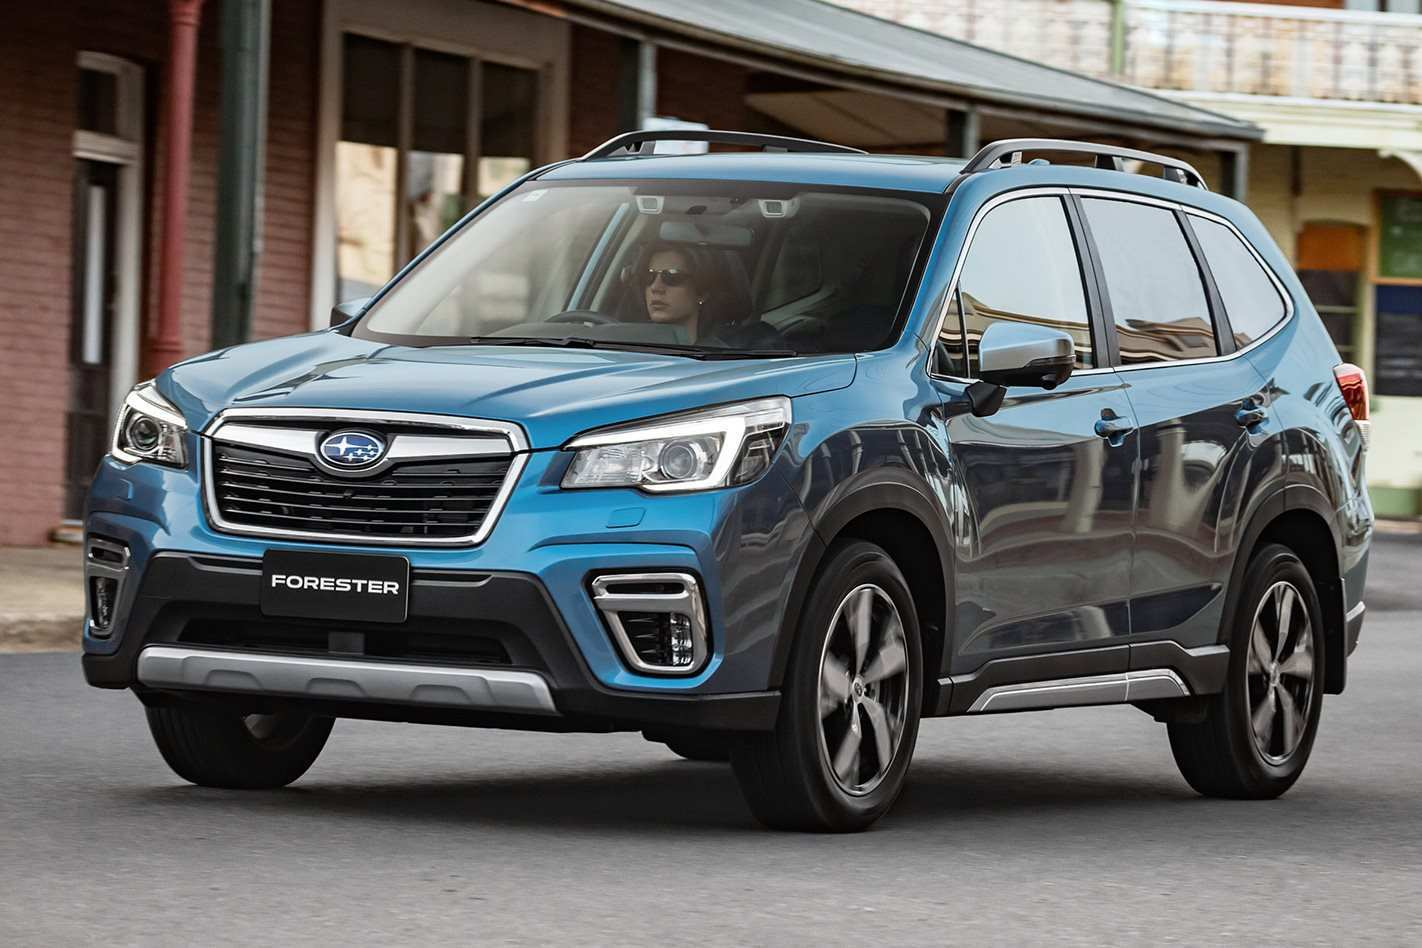 99 The Subaru Forester 2019 News Performance